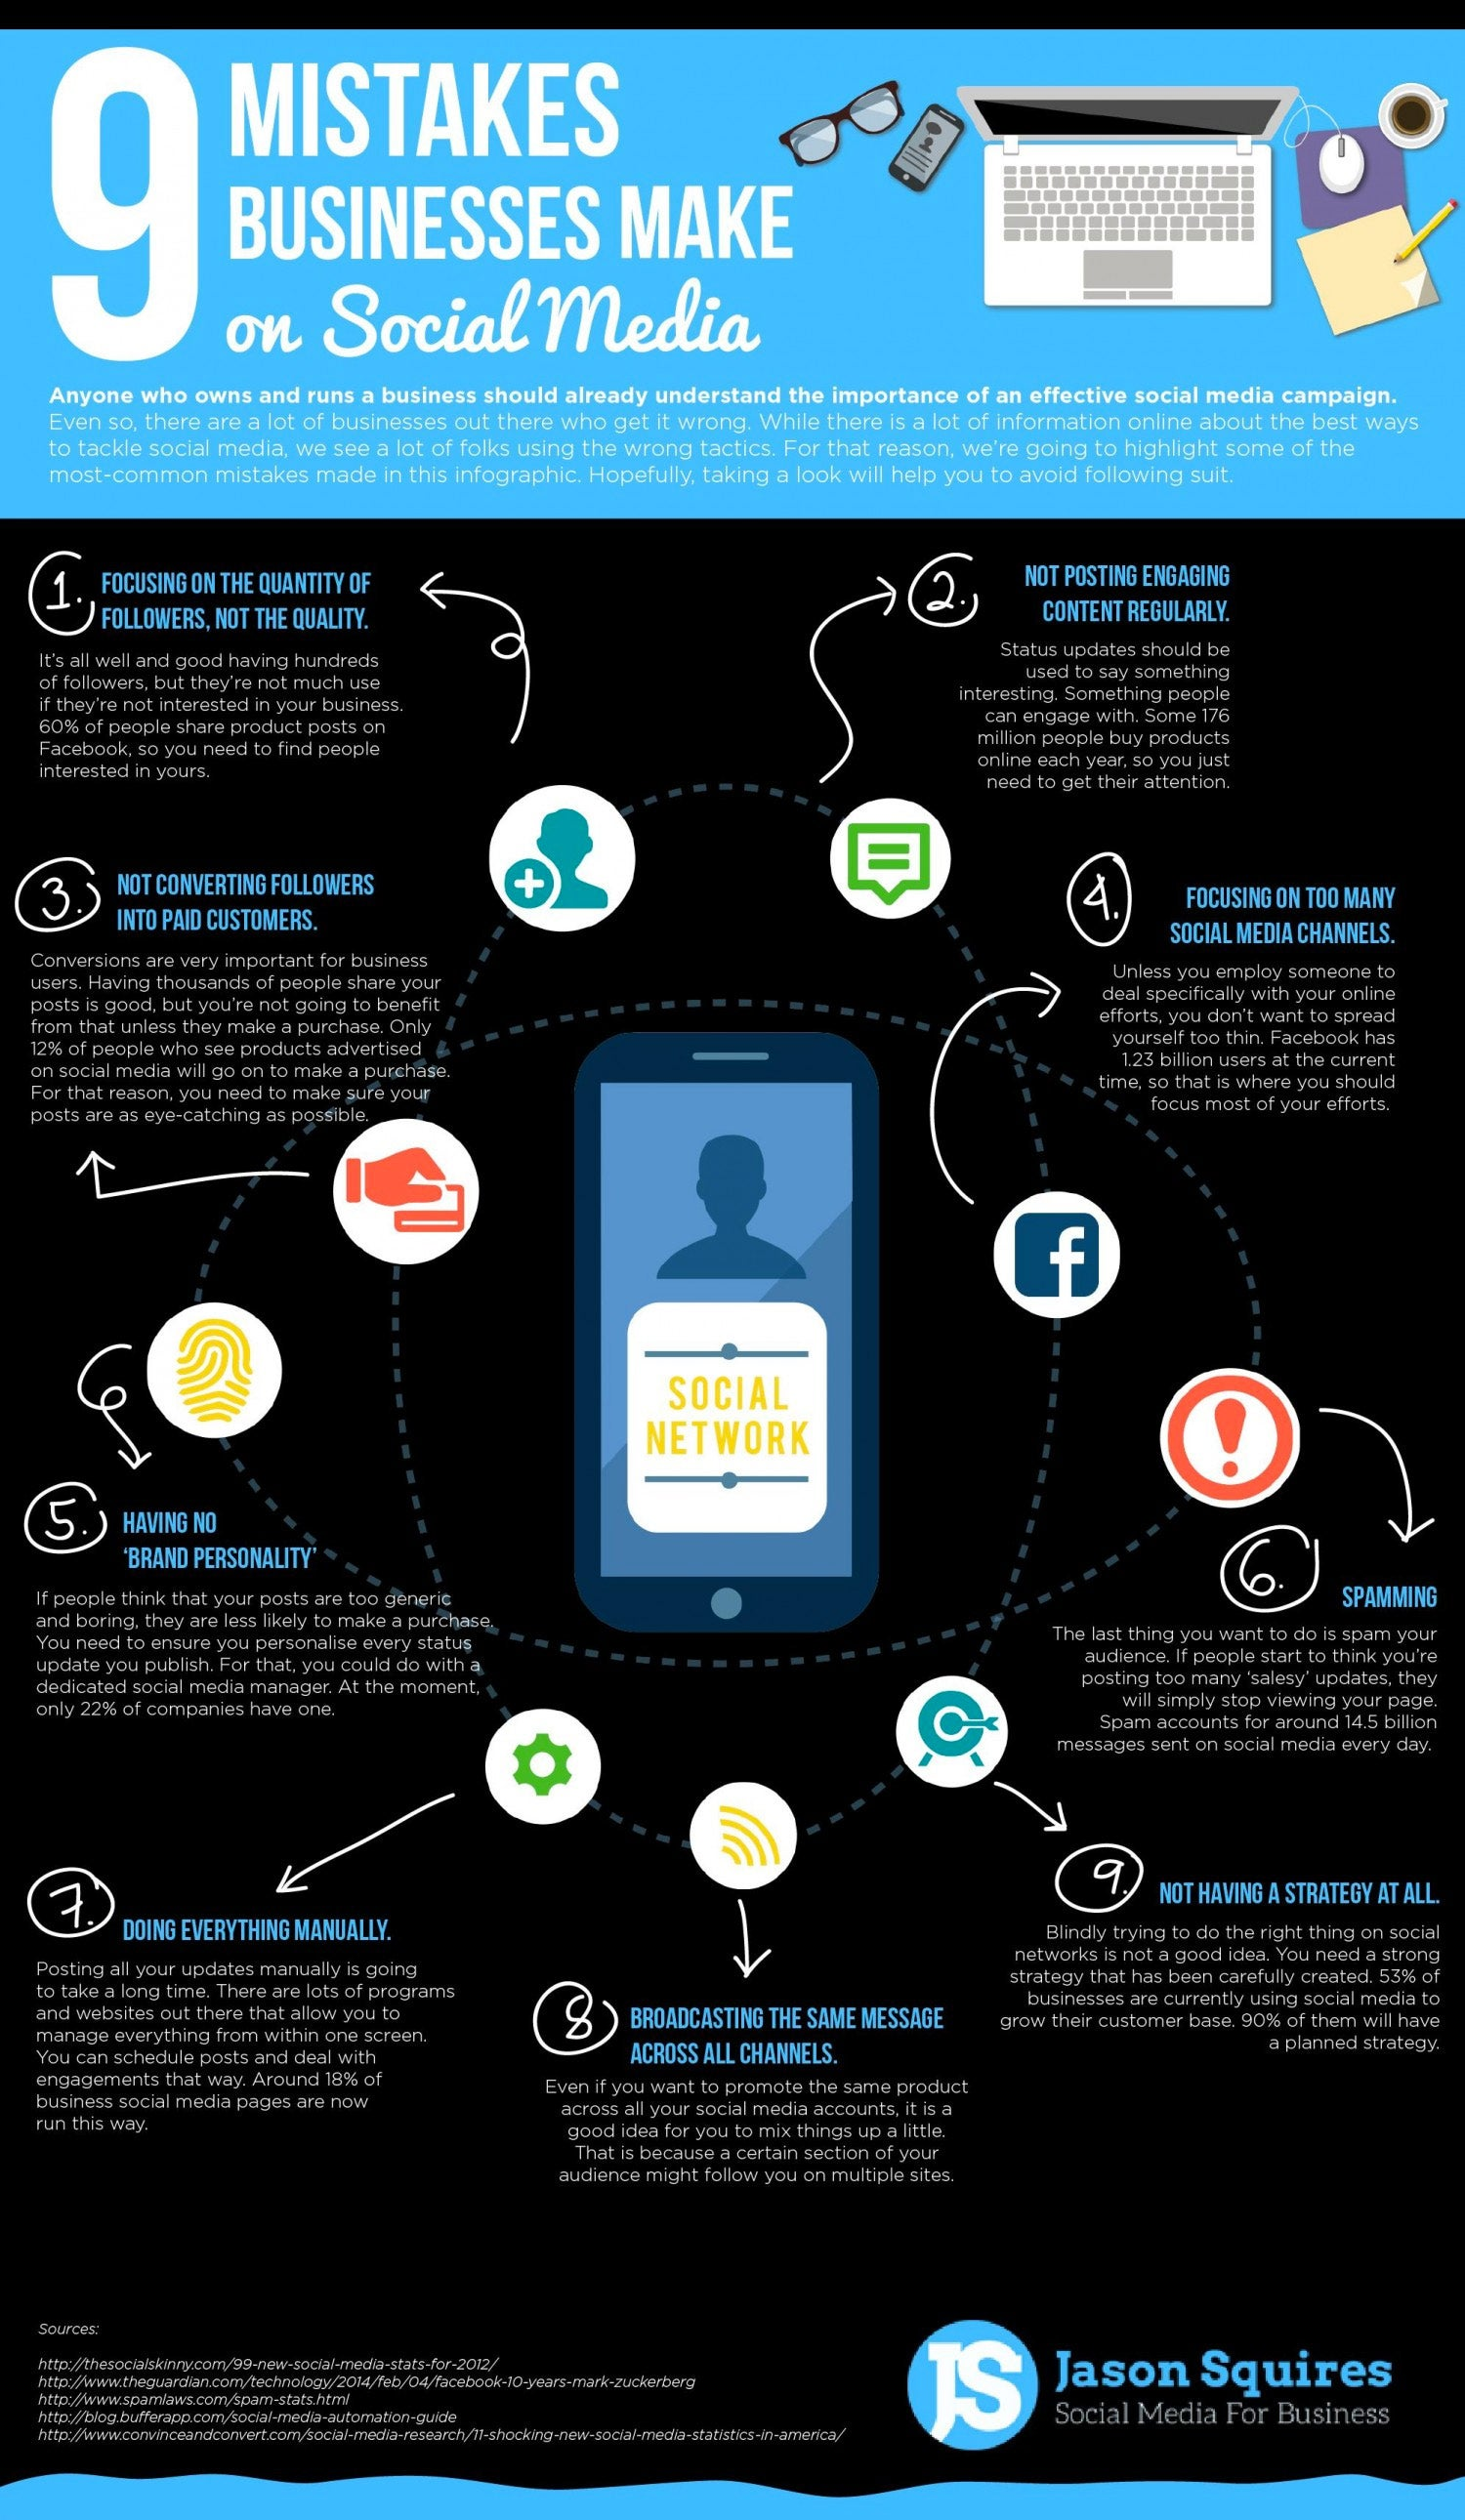 9 Mistakes Businesses Make on Social Media (Infographic)